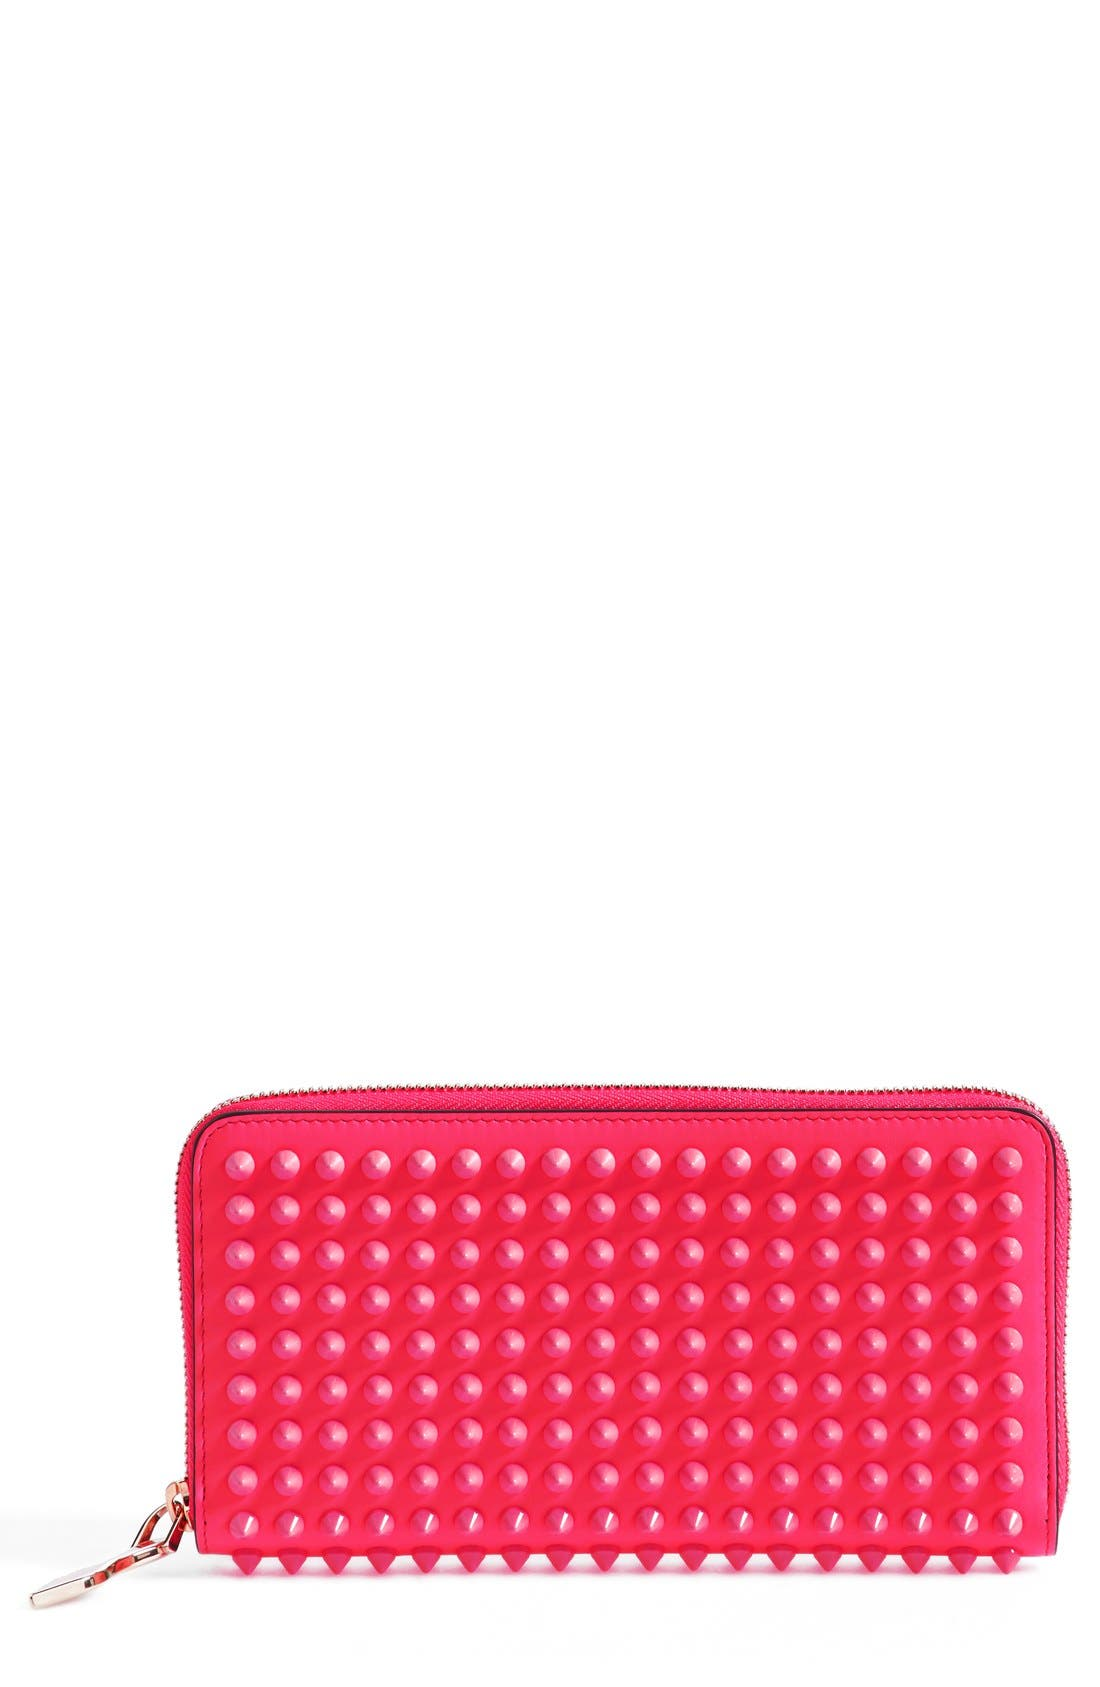 Alternate Image 1 Selected - Christian Louboutin 'Panettone' Spiked Calfskin Wallet